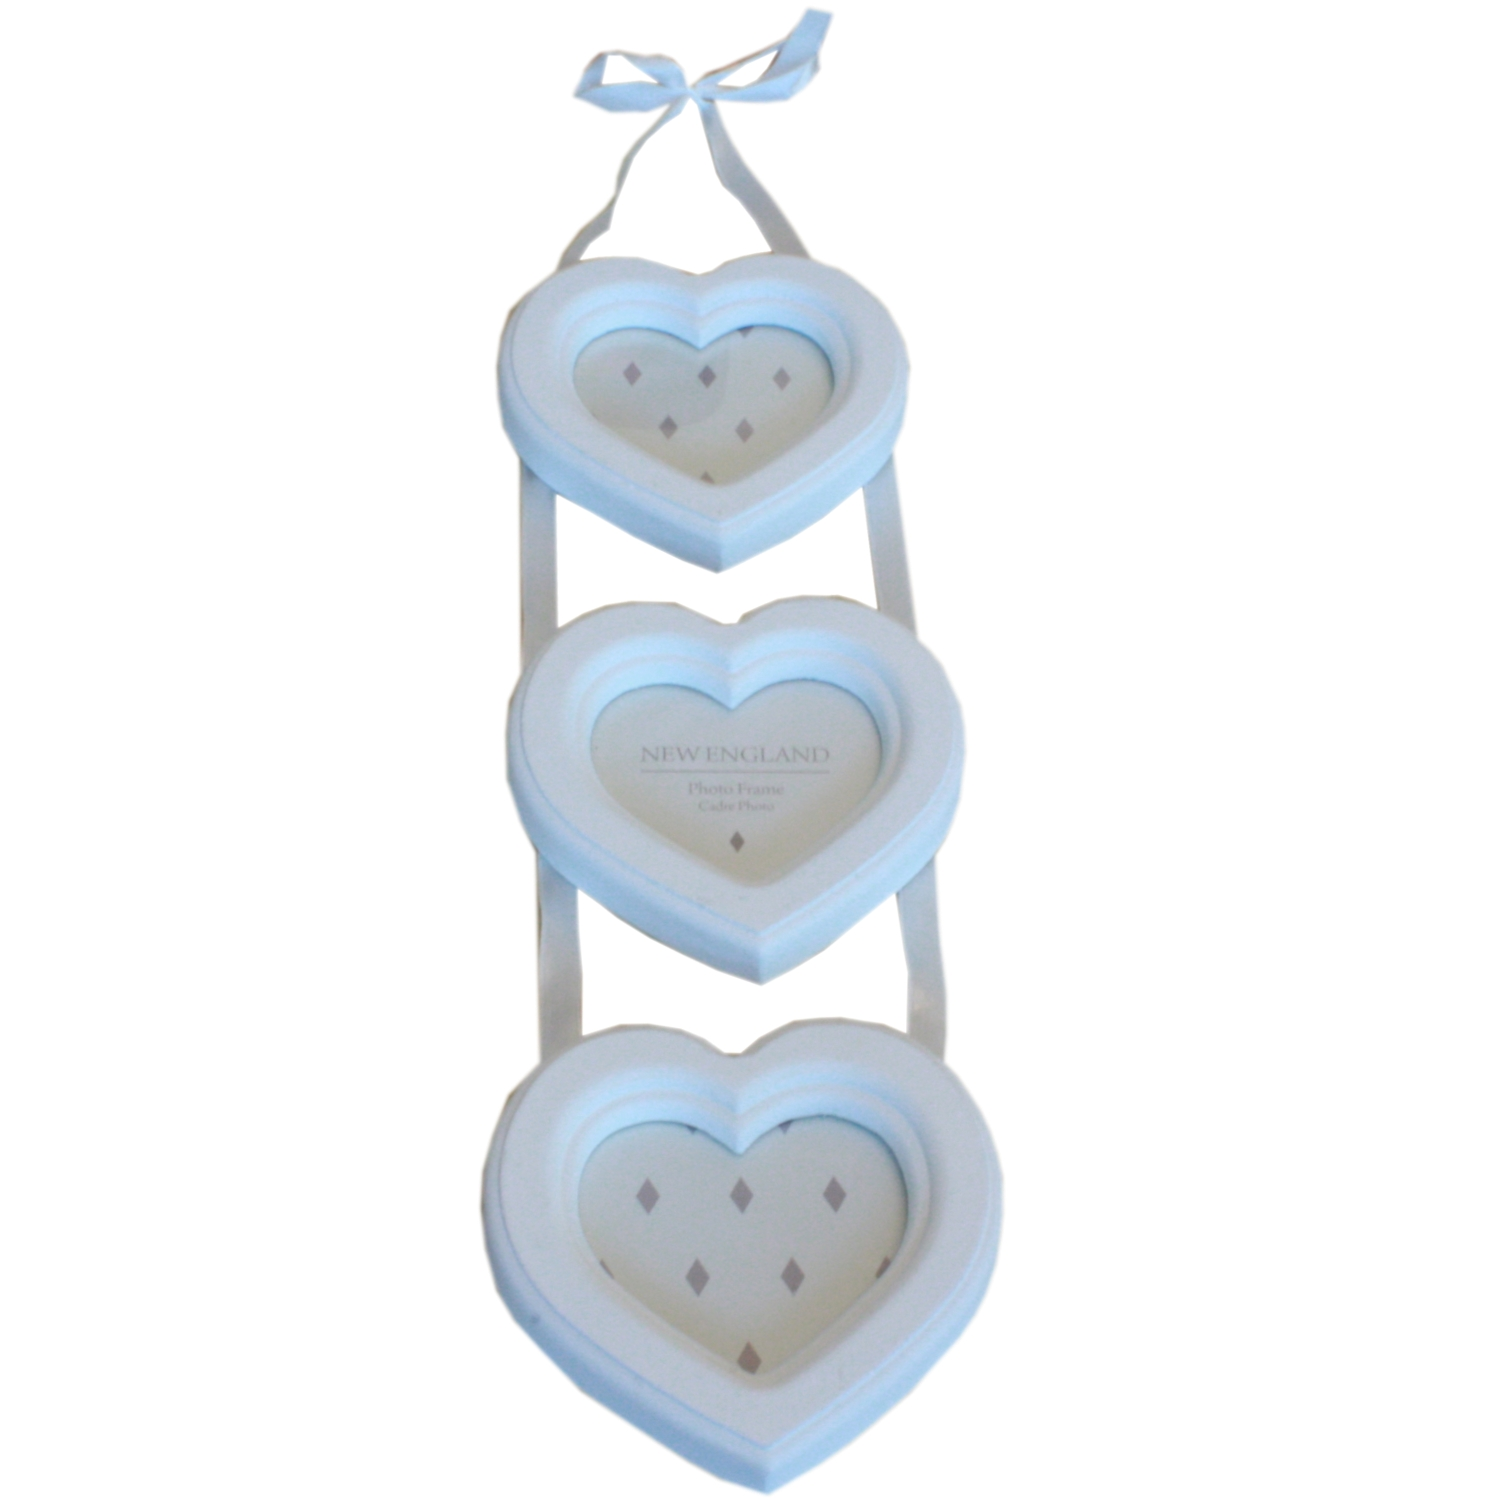 Wall Hanging Heart Shaped 3 Apperture Ladder Photo Frame in White ...